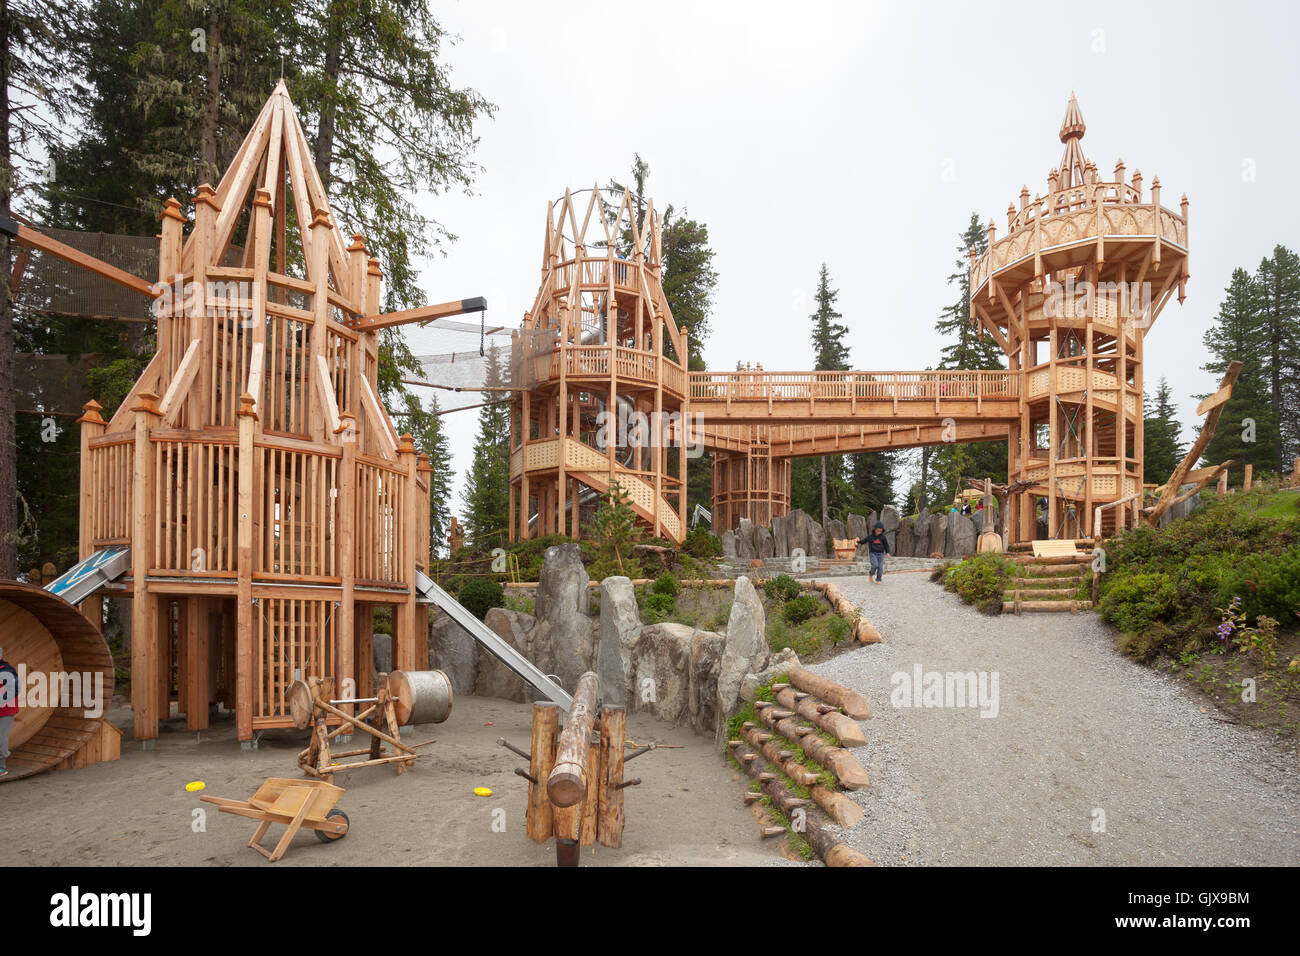 Playground Wooden Towers In Spruce Tree Castle At Rosenalm Park Near